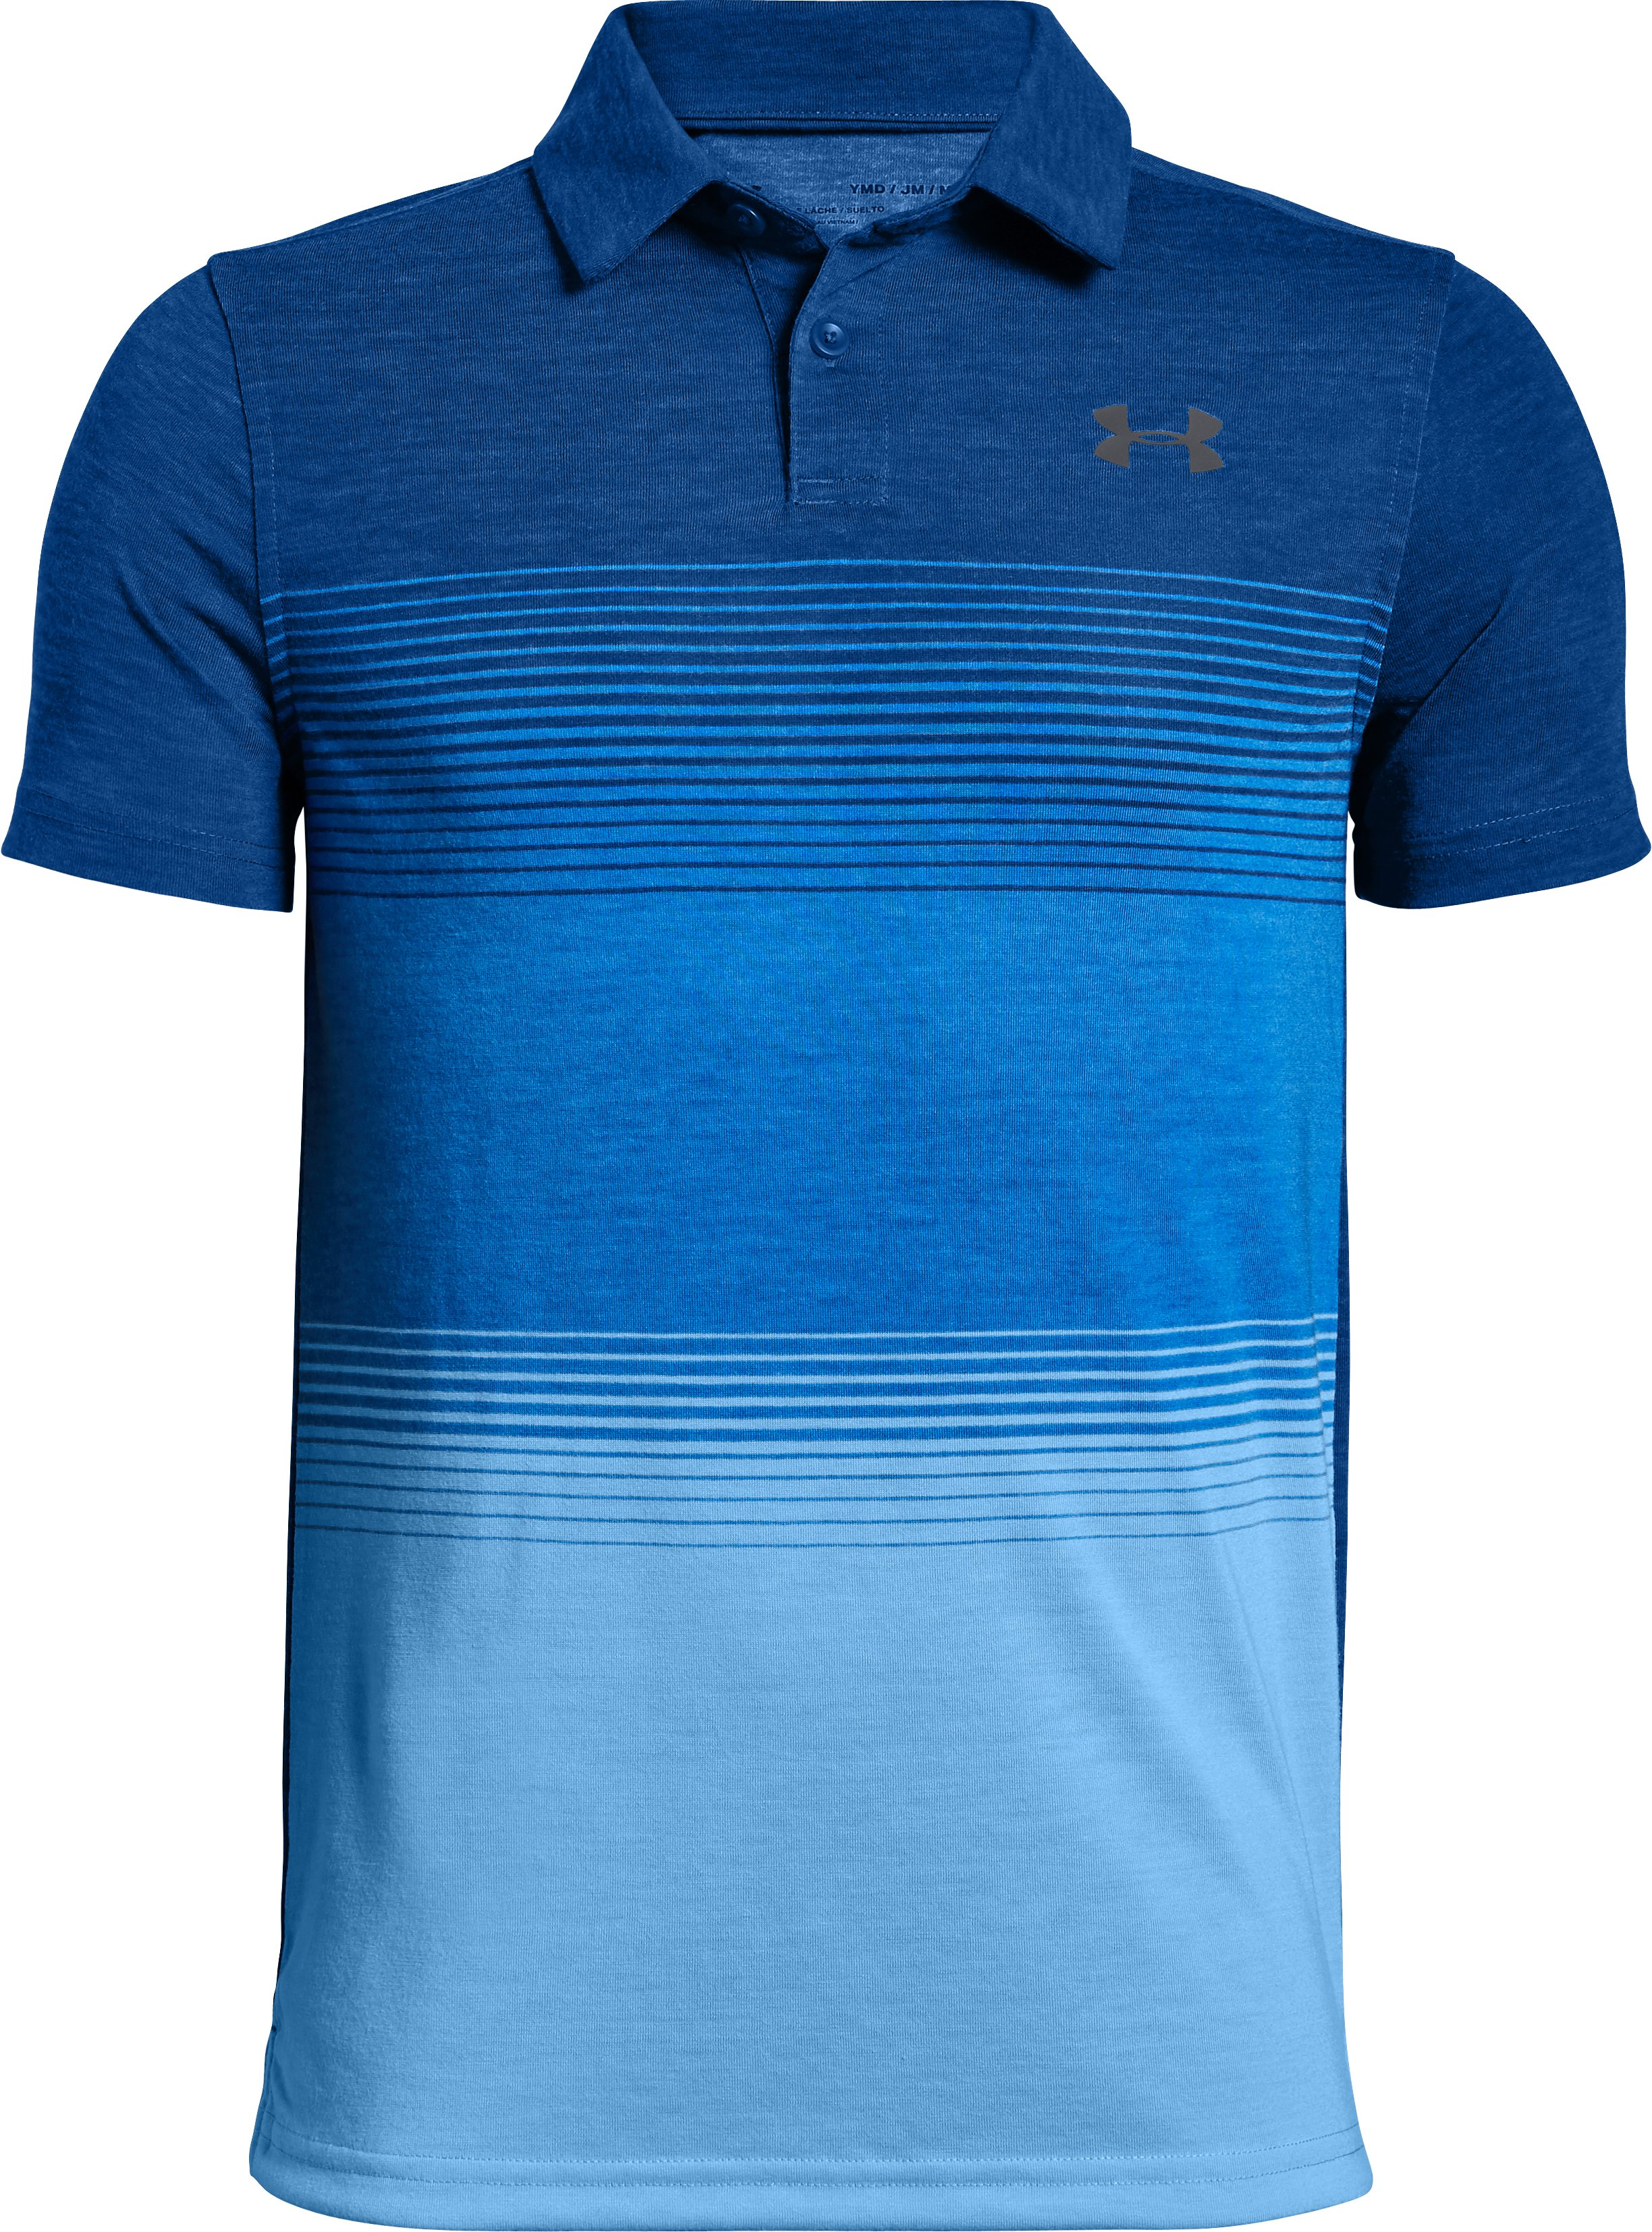 Boys' UA Jordan Spieth Threadborne Gradient Polo, Royal, zoomed